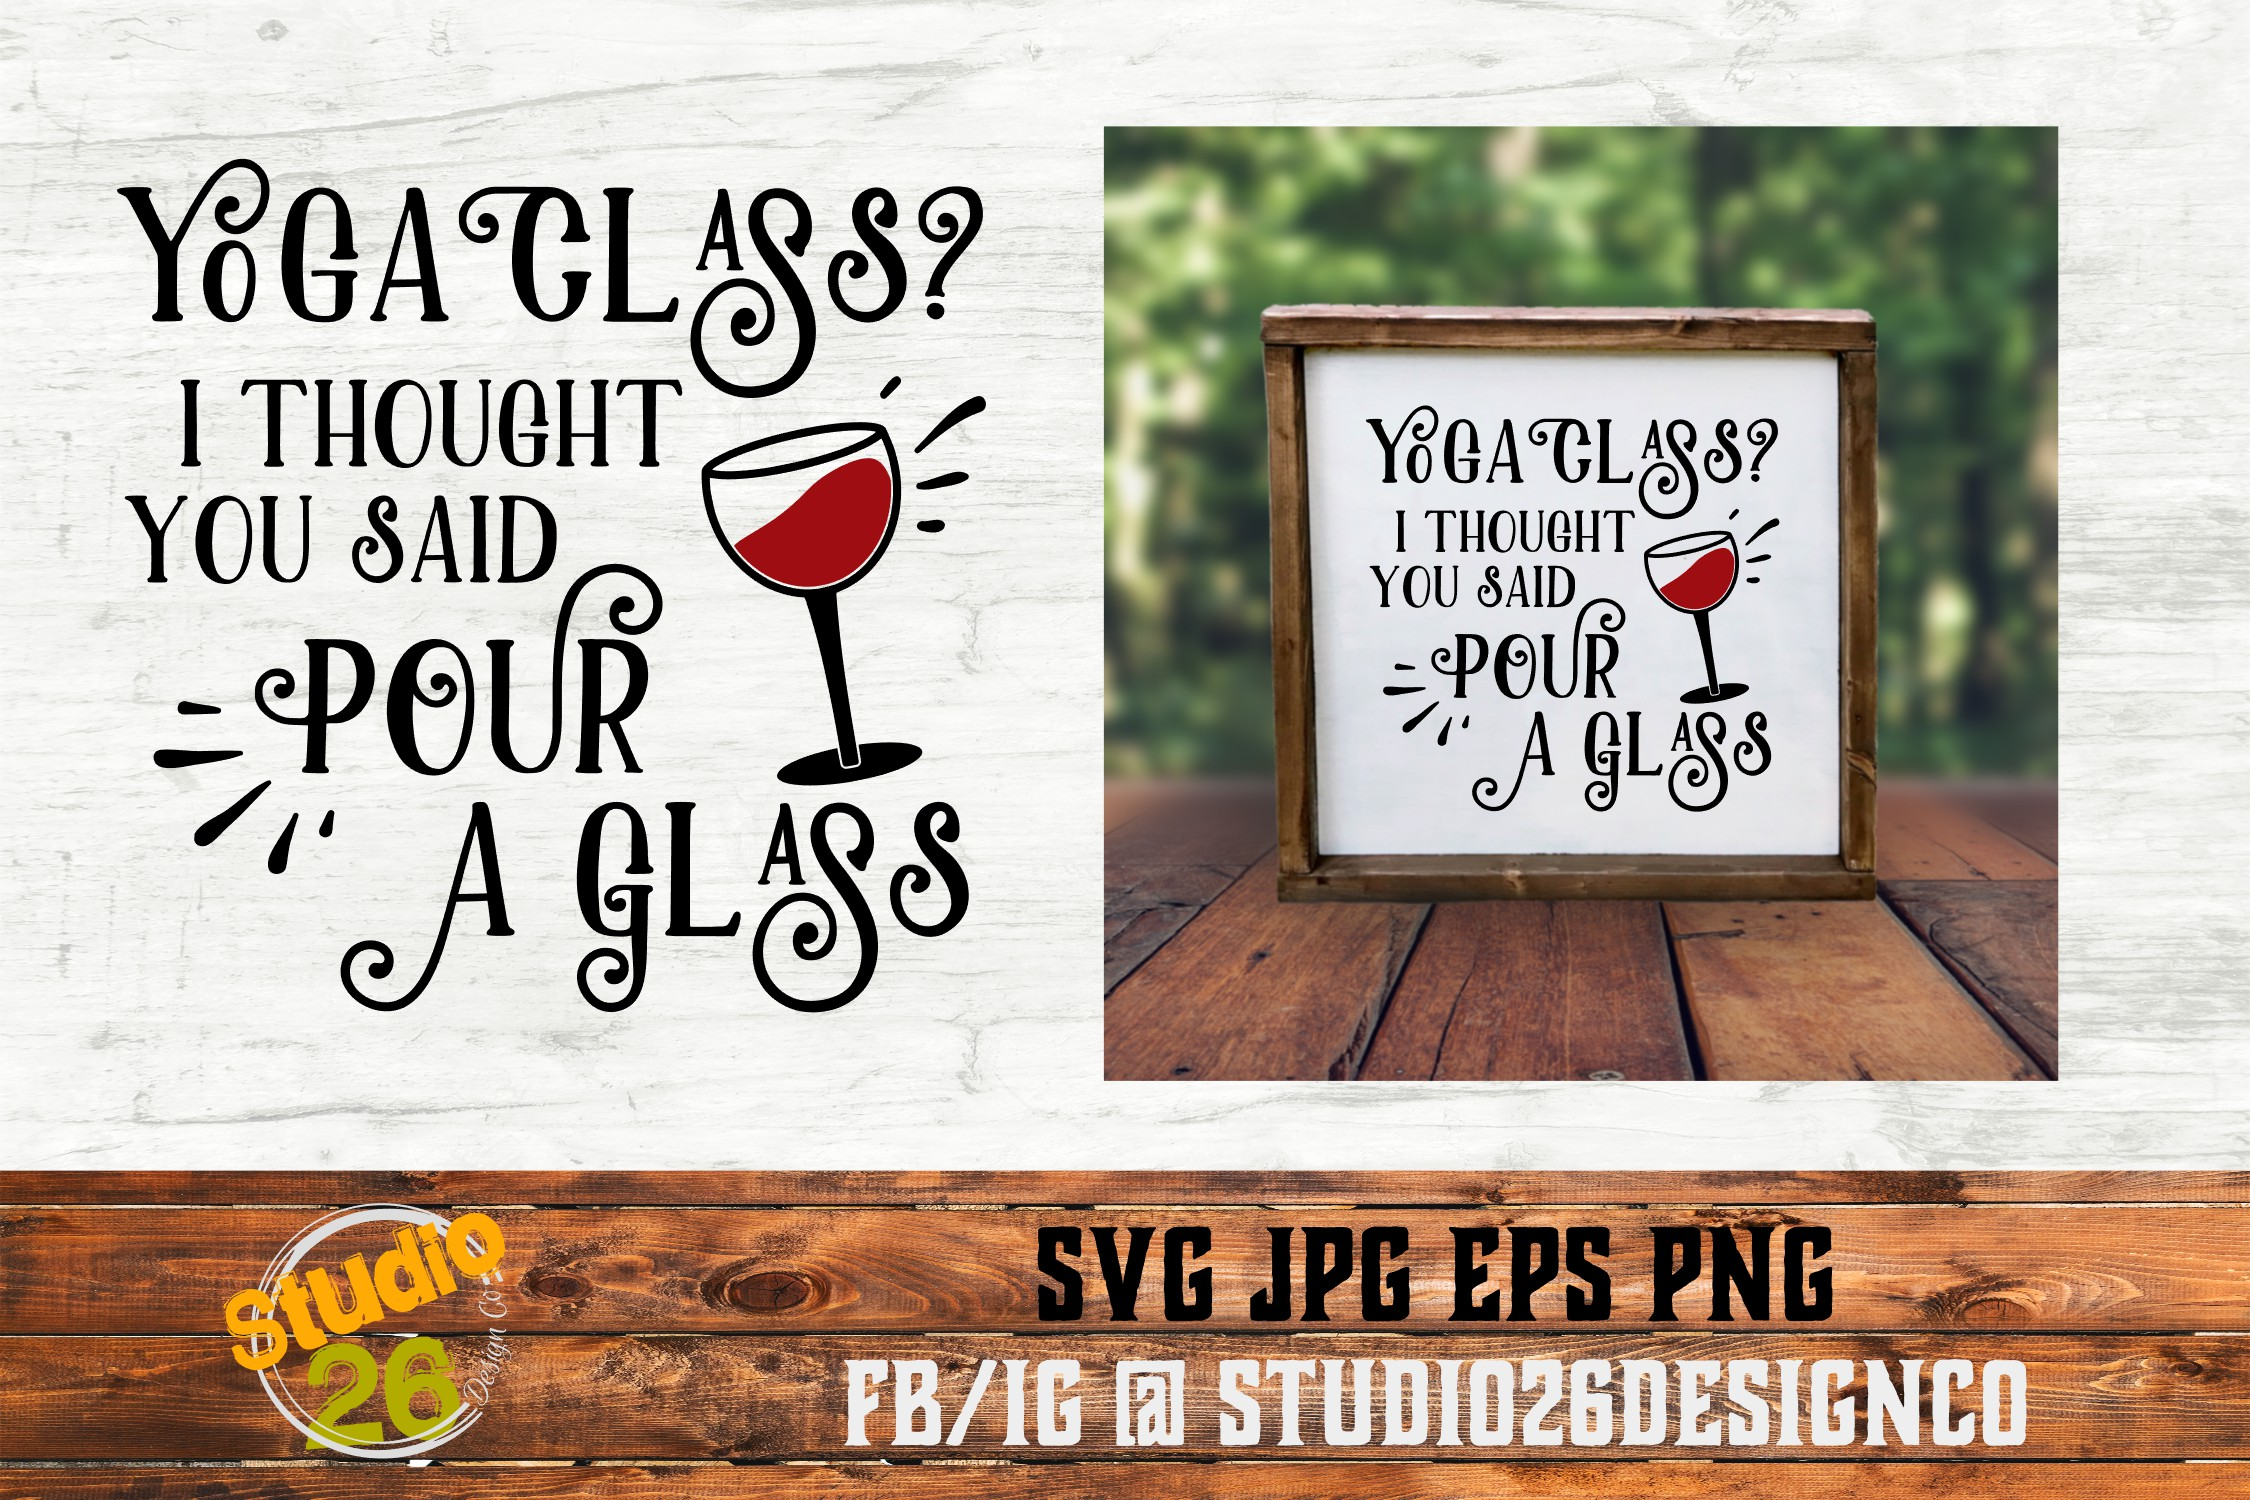 Yoga Class? I thought you said Pour a Glass - SVG PNG EPS example image 2